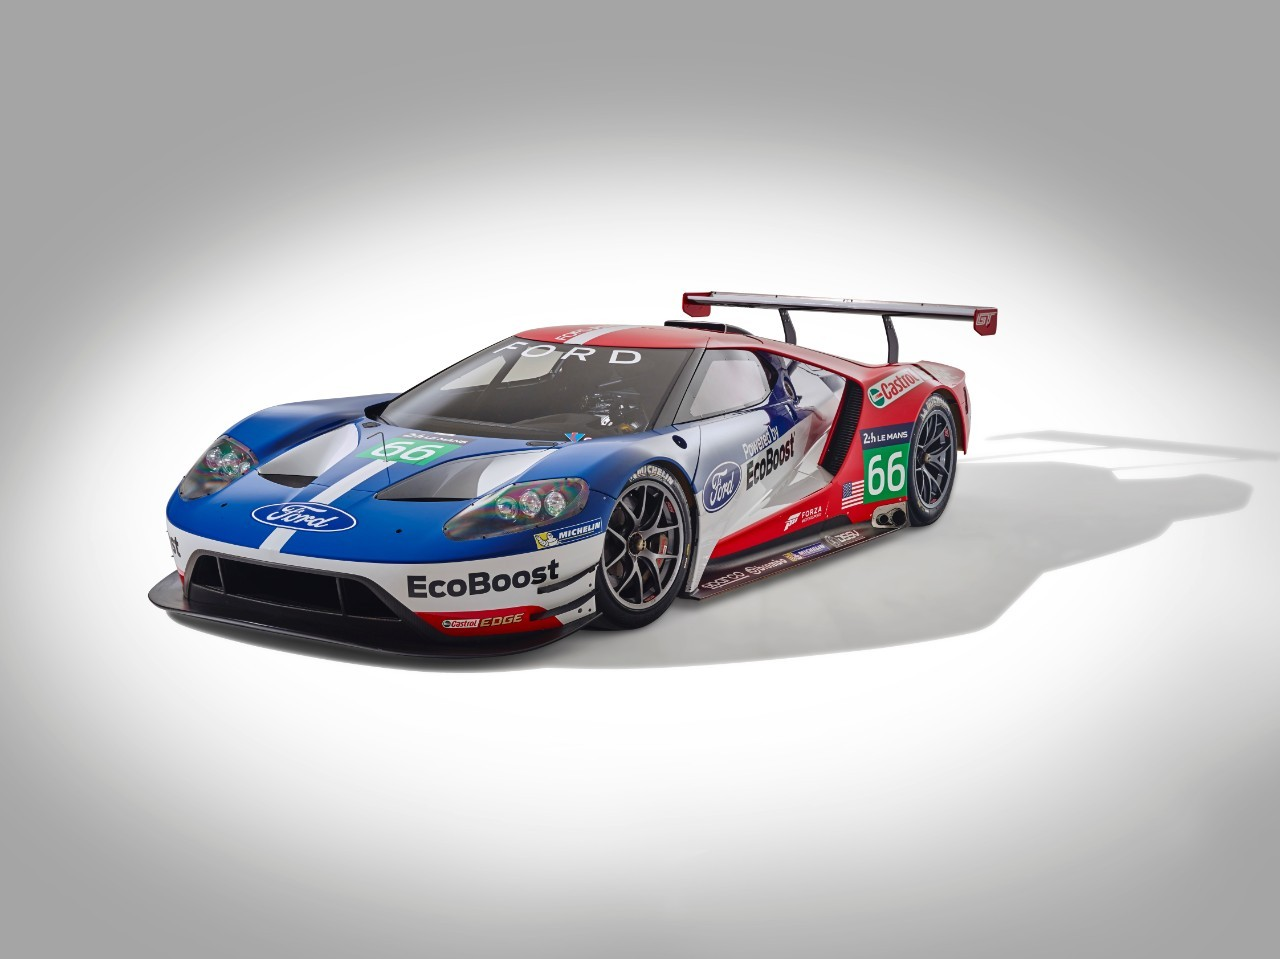 ford gt le mans racecar confirmed to debut at 2016 daytona. Black Bedroom Furniture Sets. Home Design Ideas